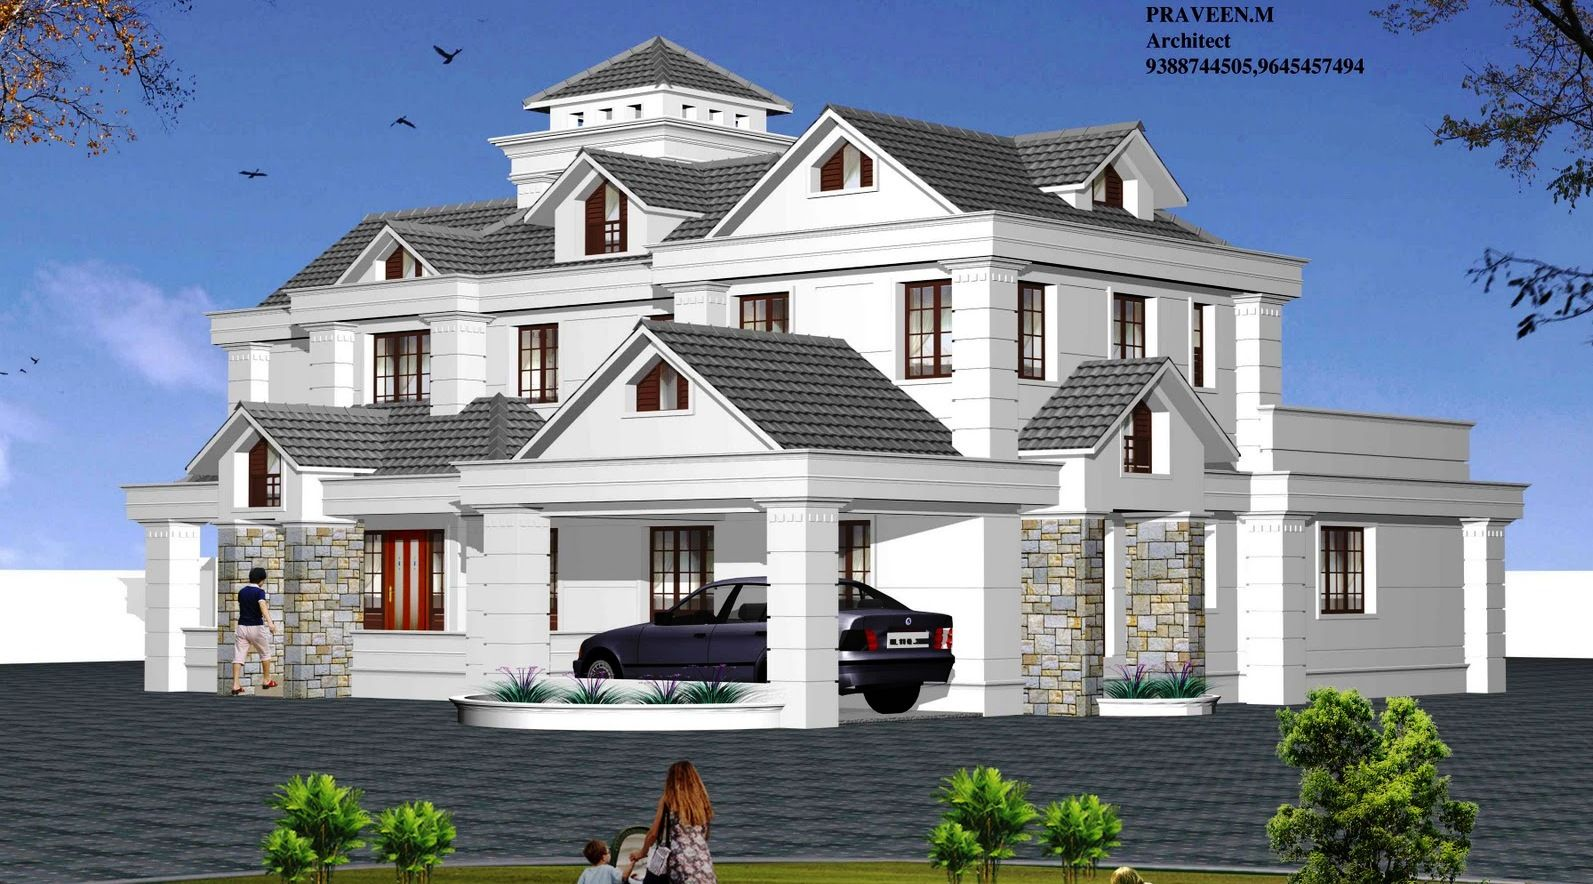 Architecture House Design Ideas 3000 sq ft kerala home designanas shameem architects